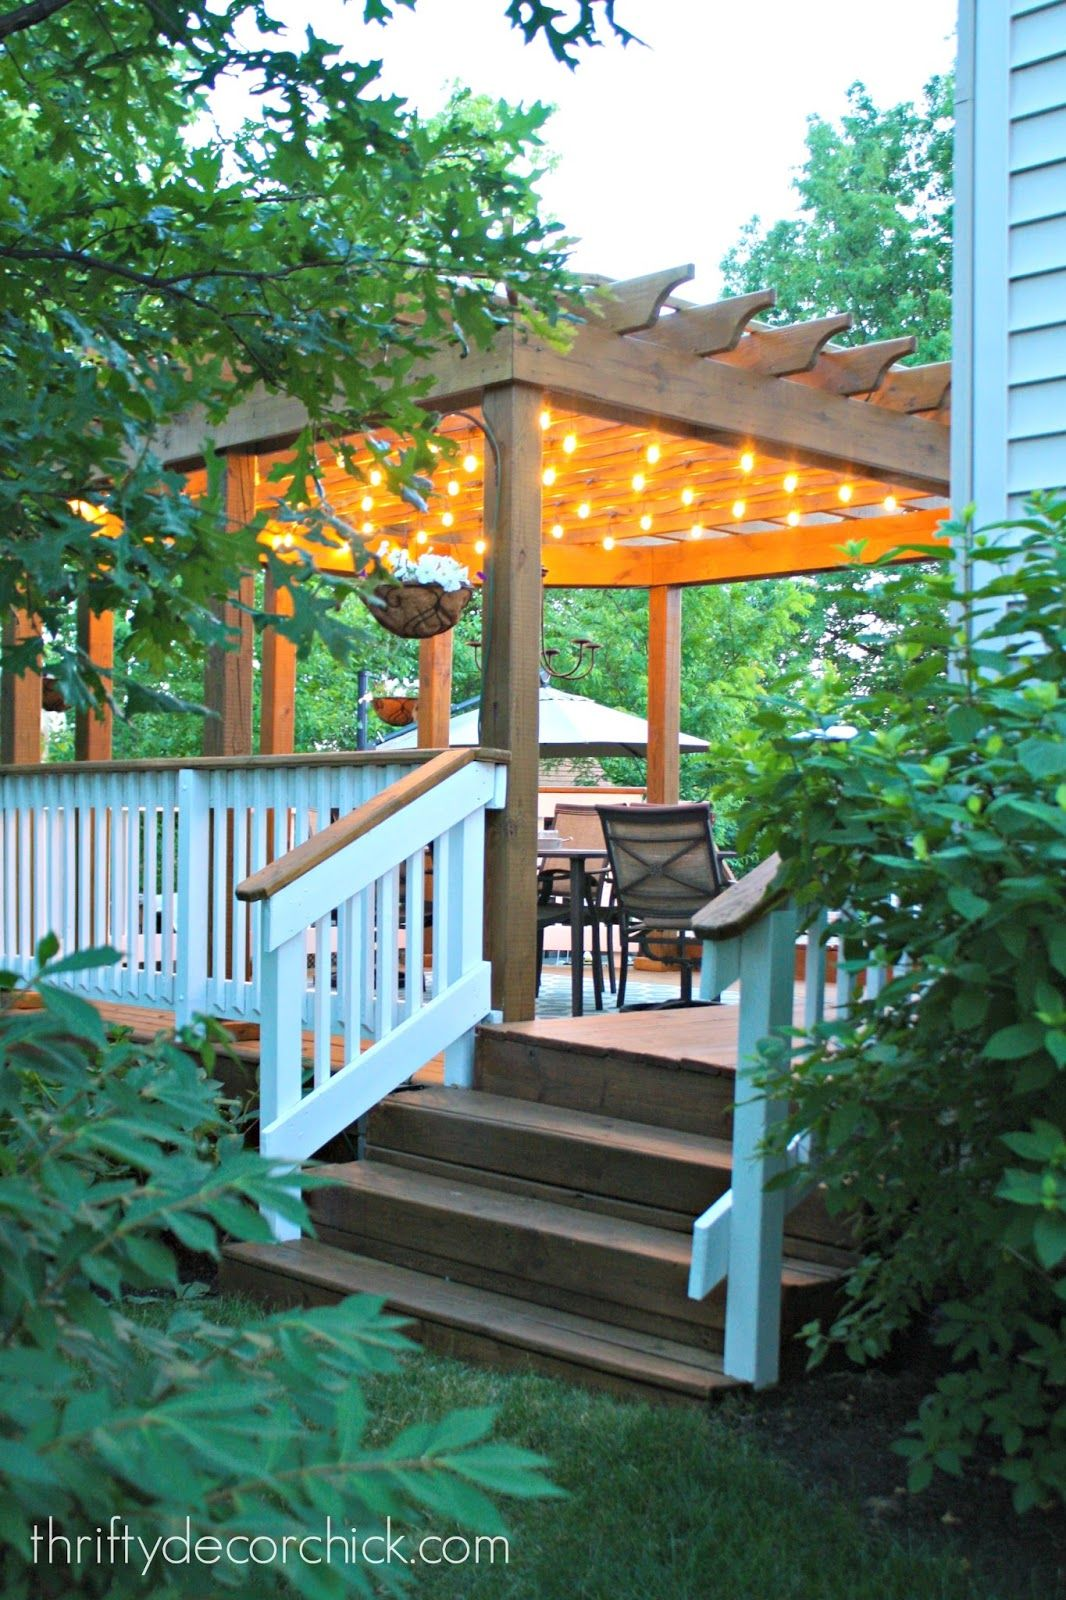 Outdoor Lights Under Pergola Love This Deck And Fire Place